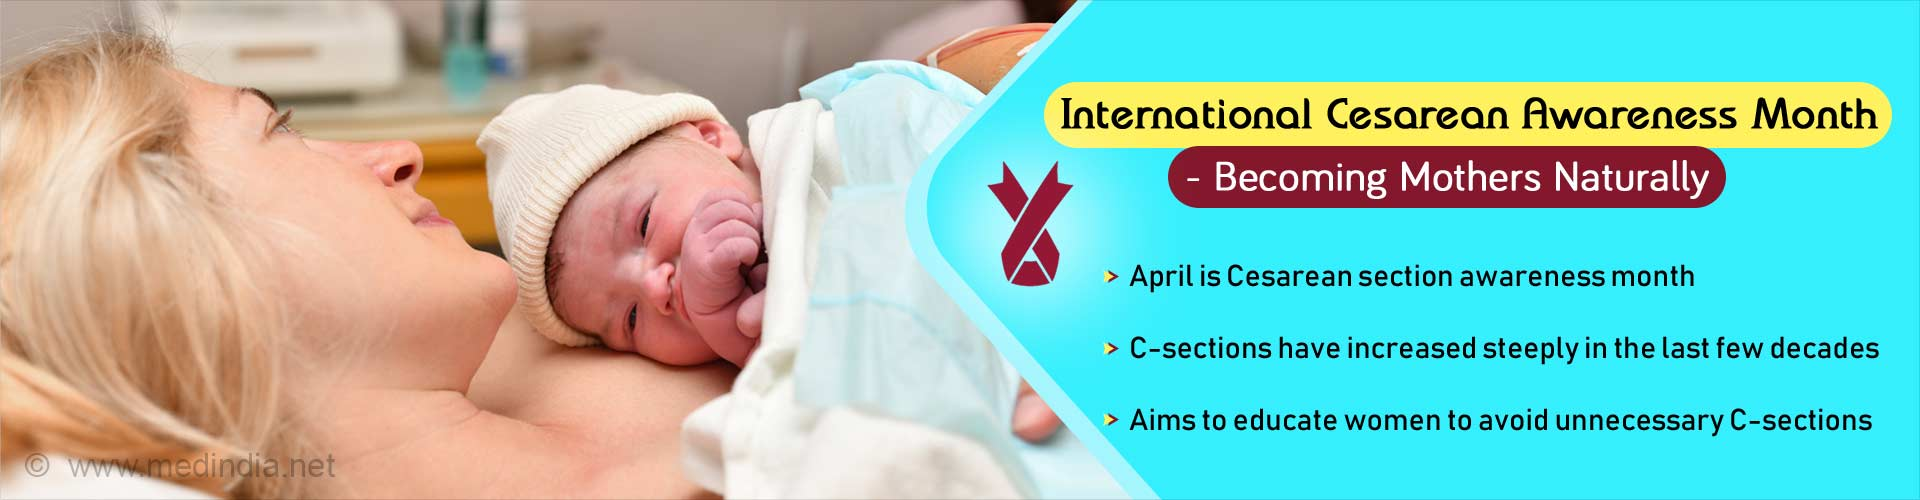 International Cesarean Awareness Month – Not All C-Sections Are Justified